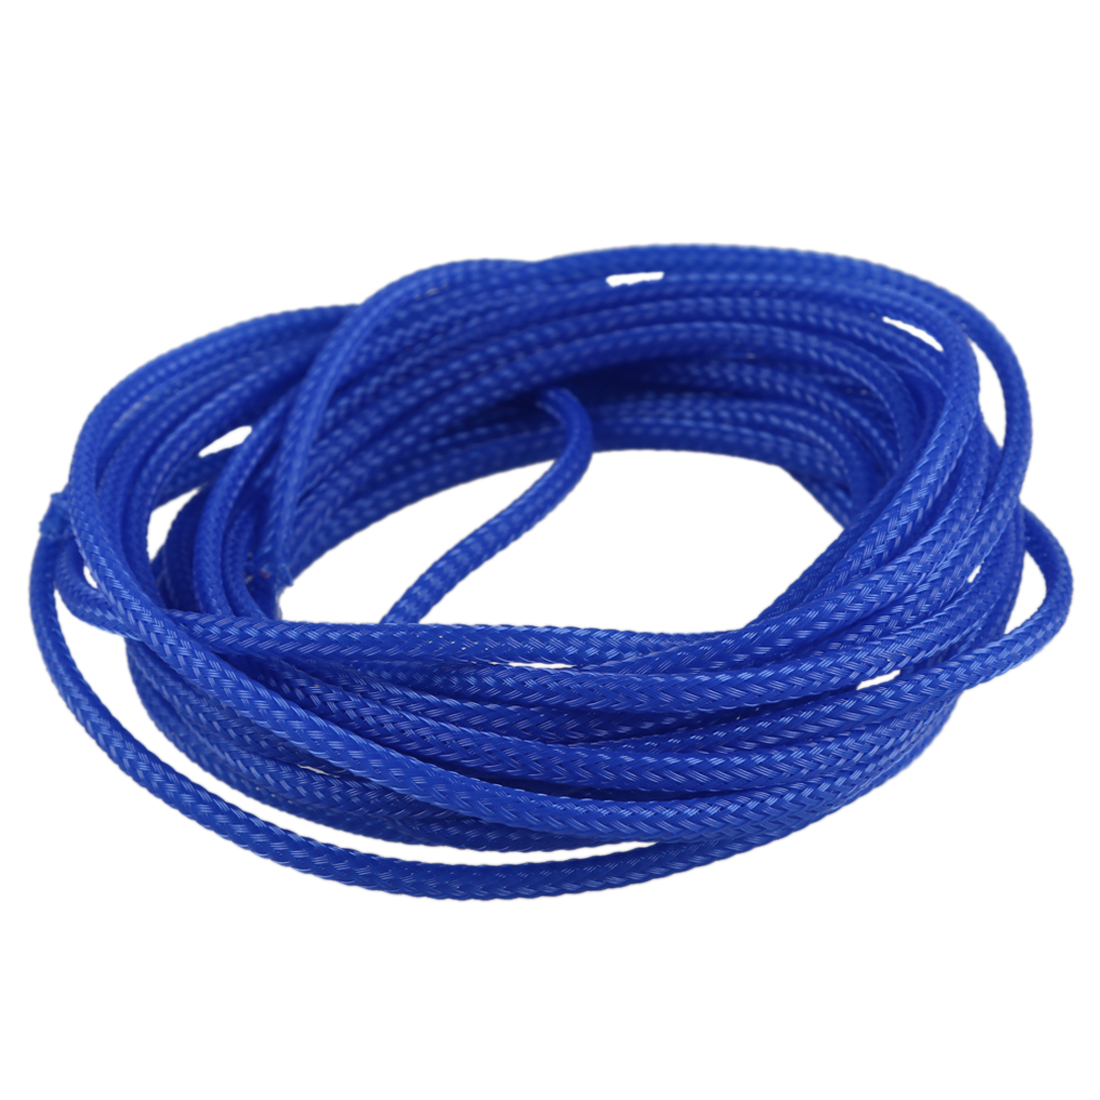 5M 4mm Expanding Braided Cable Wire Sheathing Sleeve Sleeving Harness  Blue-in Cable Sleeves from Home Improvement on Aliexpress.com | Alibaba  Group